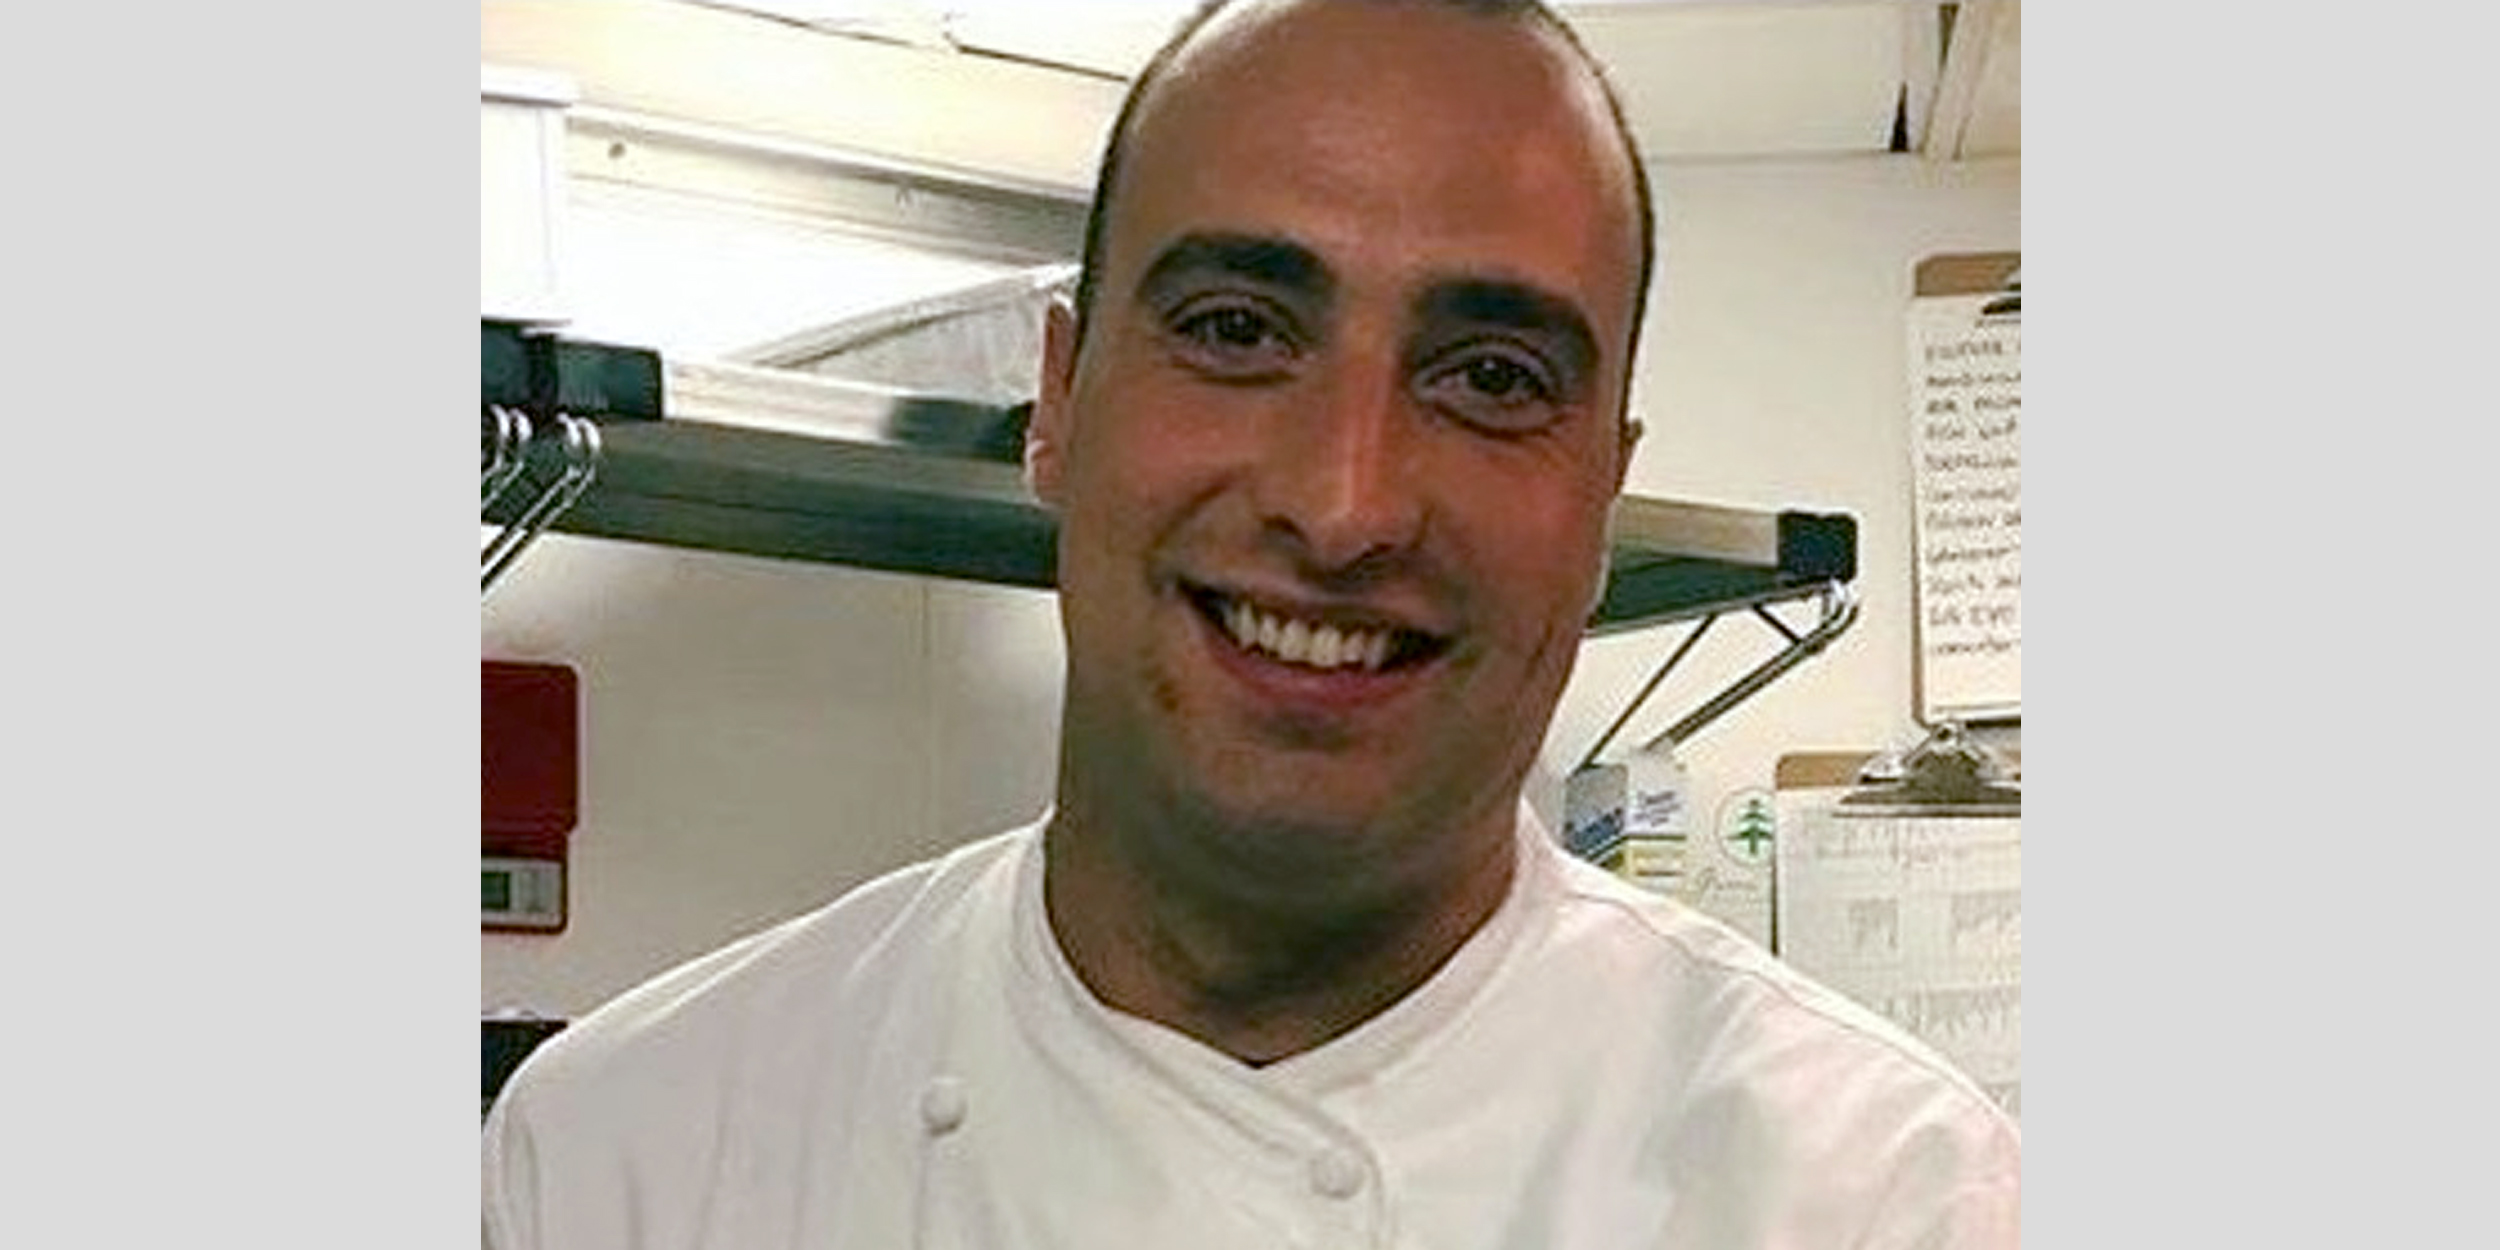 Missing chef Andrea Zamperoni, head of renowned NYC restaurant Cipriani Dolci, found dead